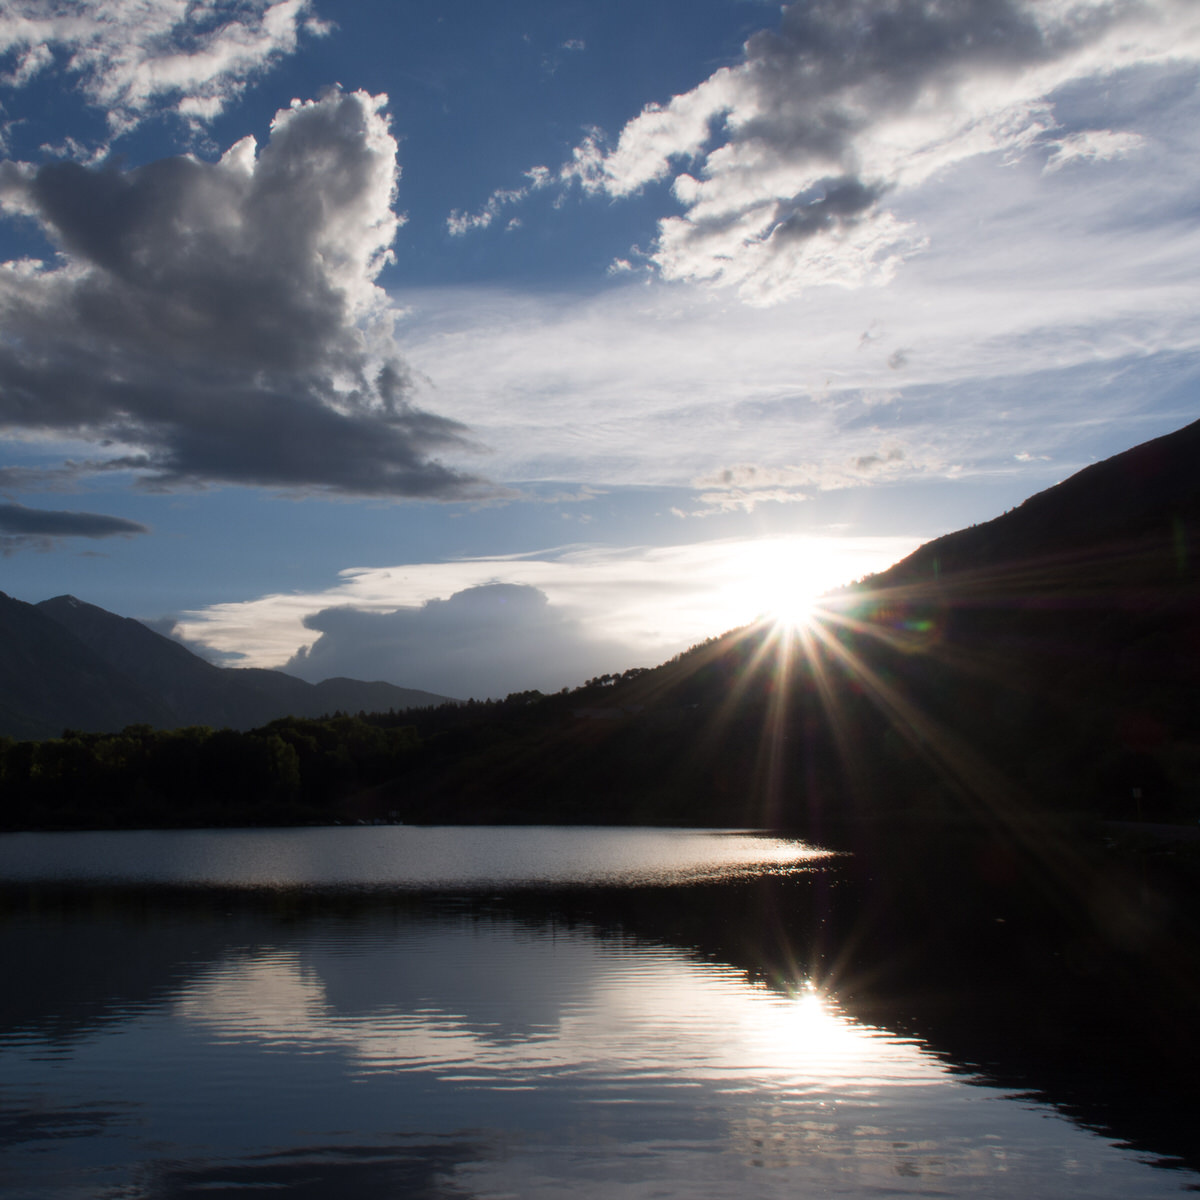 Sunset over a high altitude lake in the Colorado Rockies